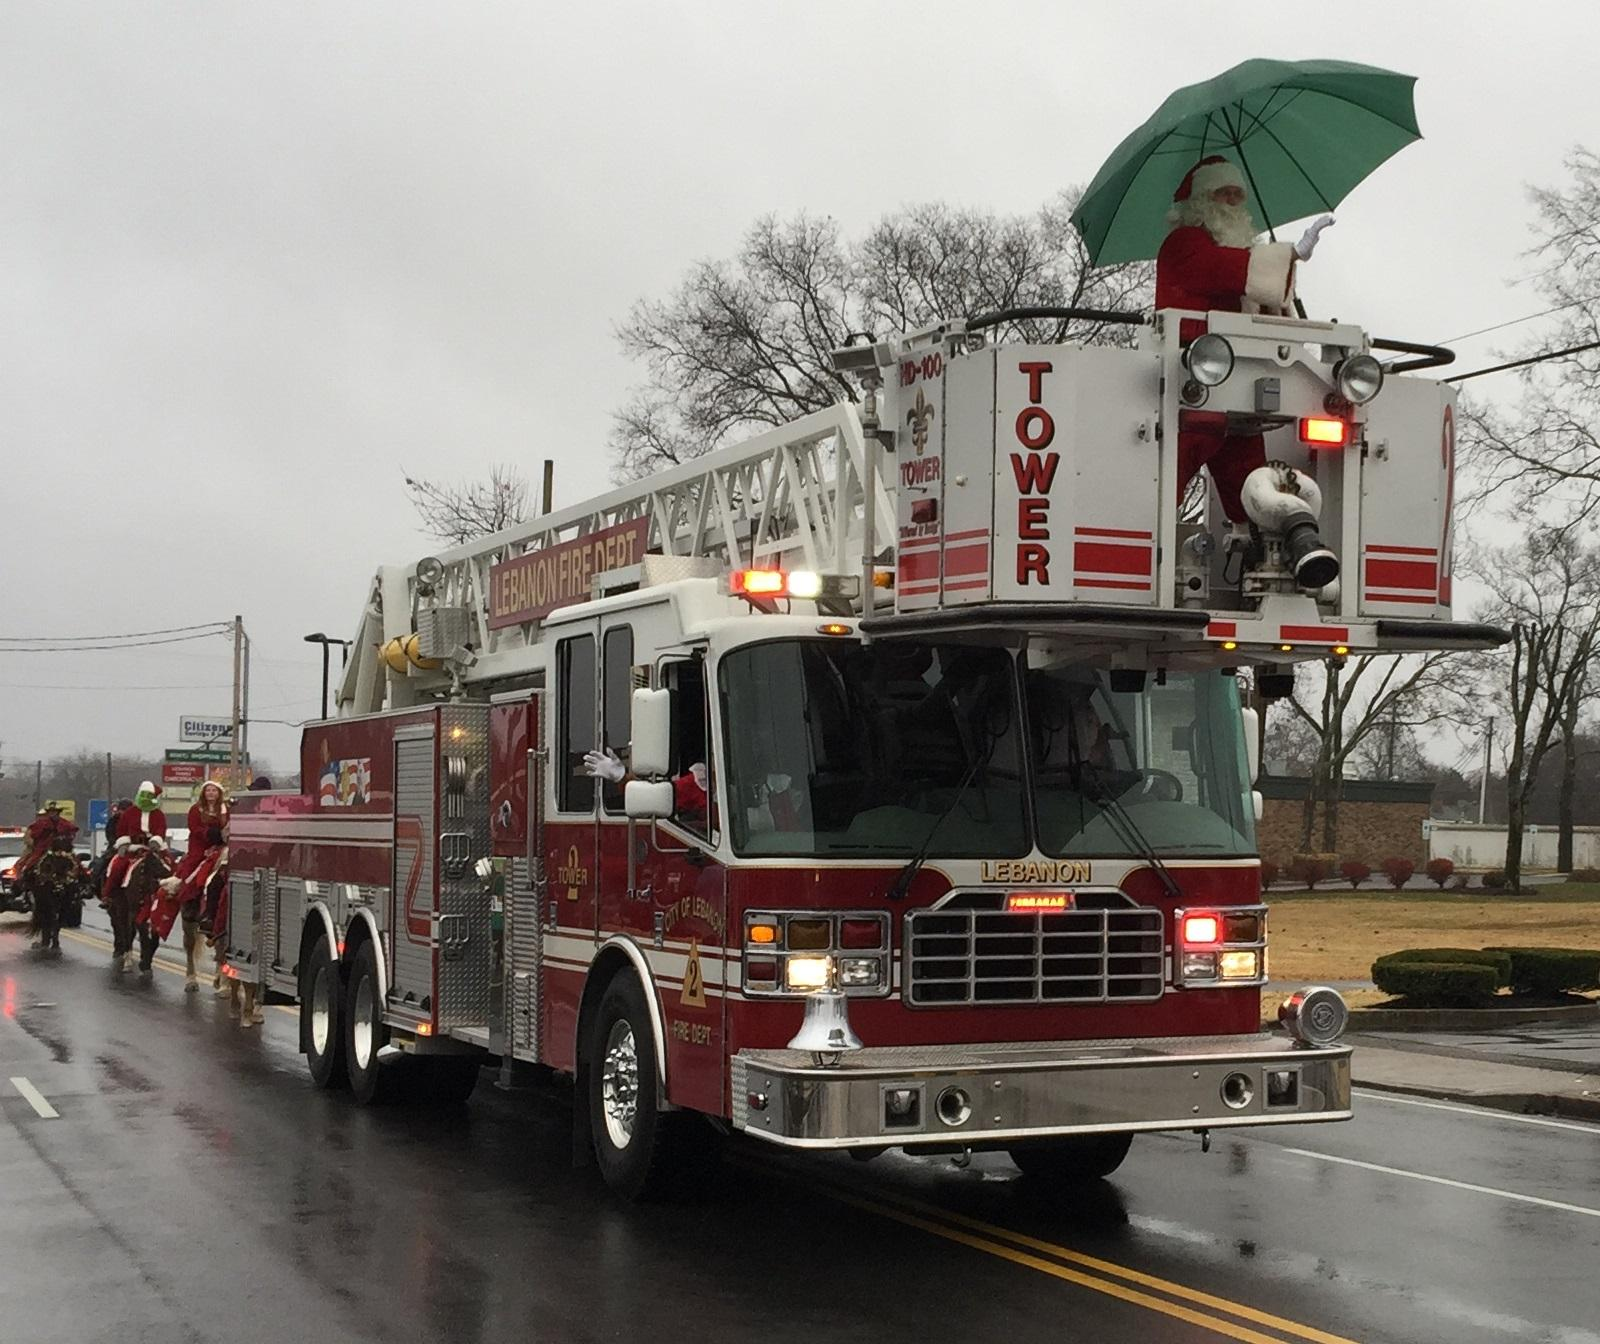 Lebanon Christmas Parade to Begin Holiday Season with a Great Amount of Cheer